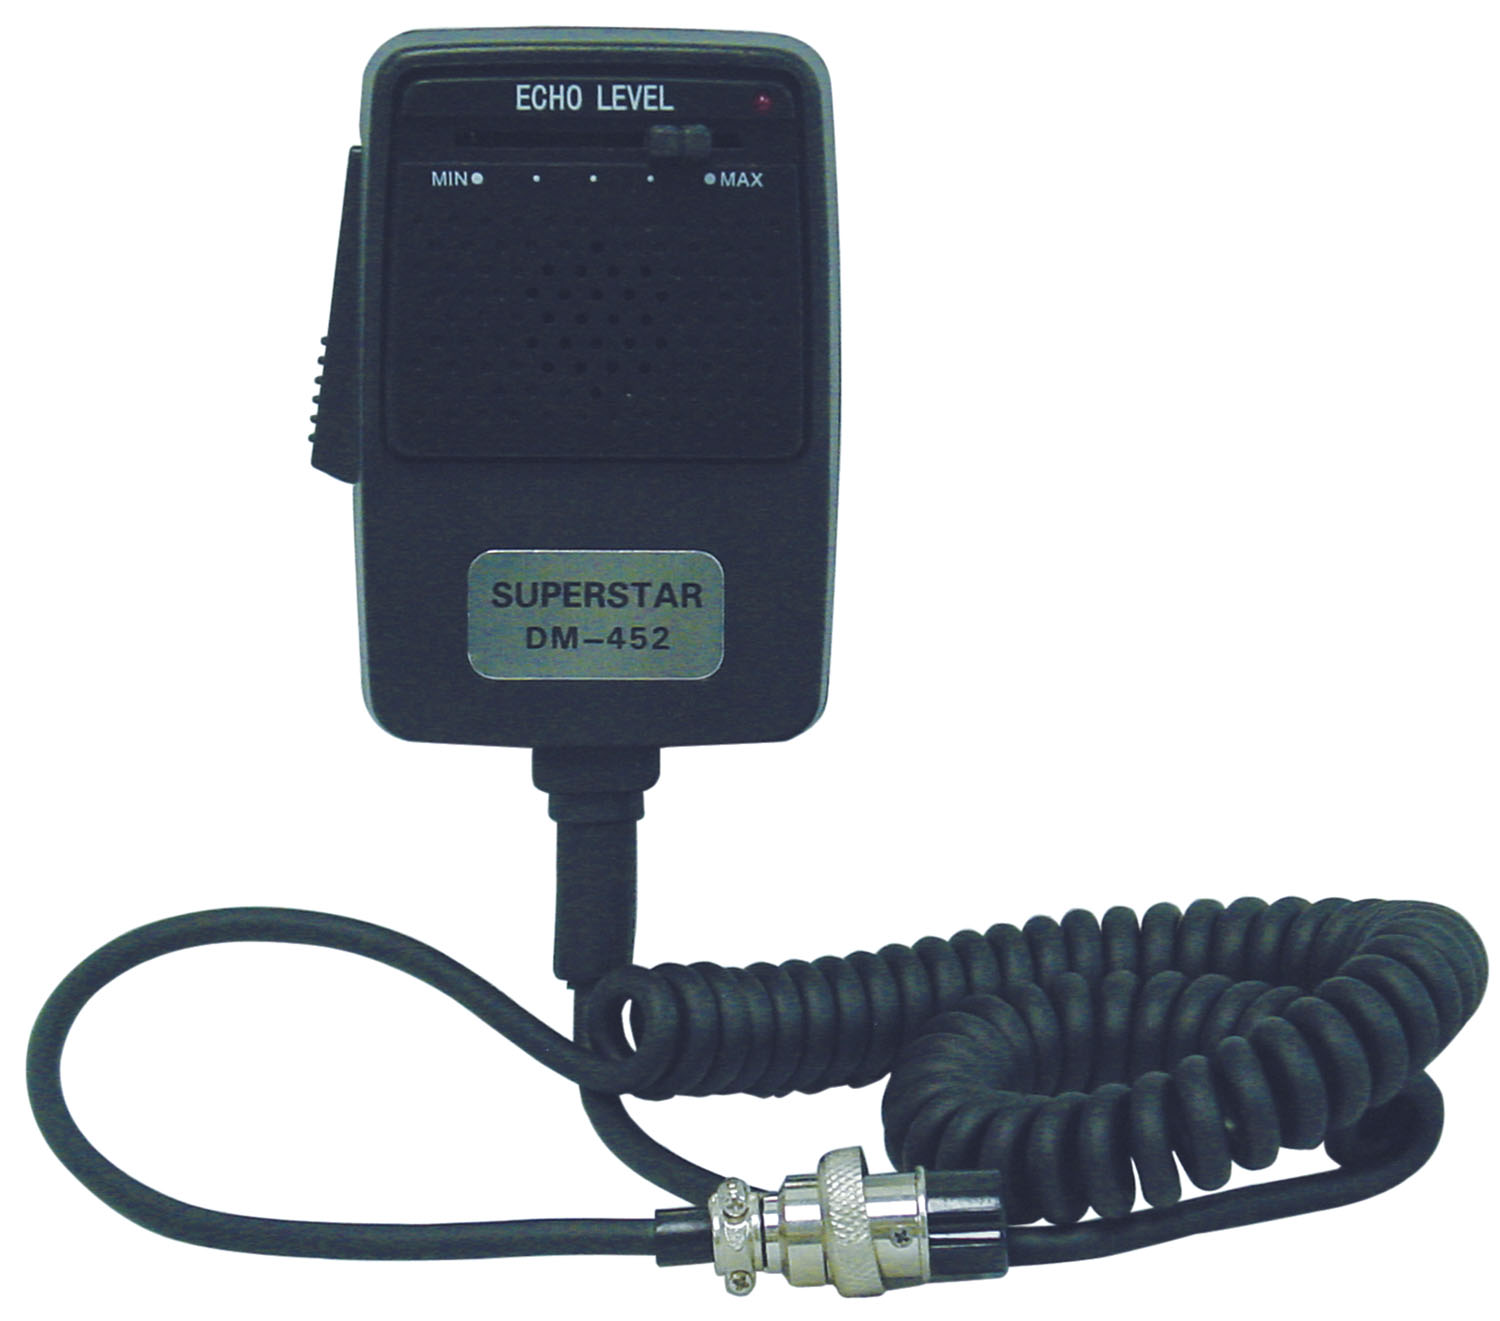 DM452 - Twinpoint Superstar Power Echo CB Microphone (Select 4 Pin or 5 Pin Option)